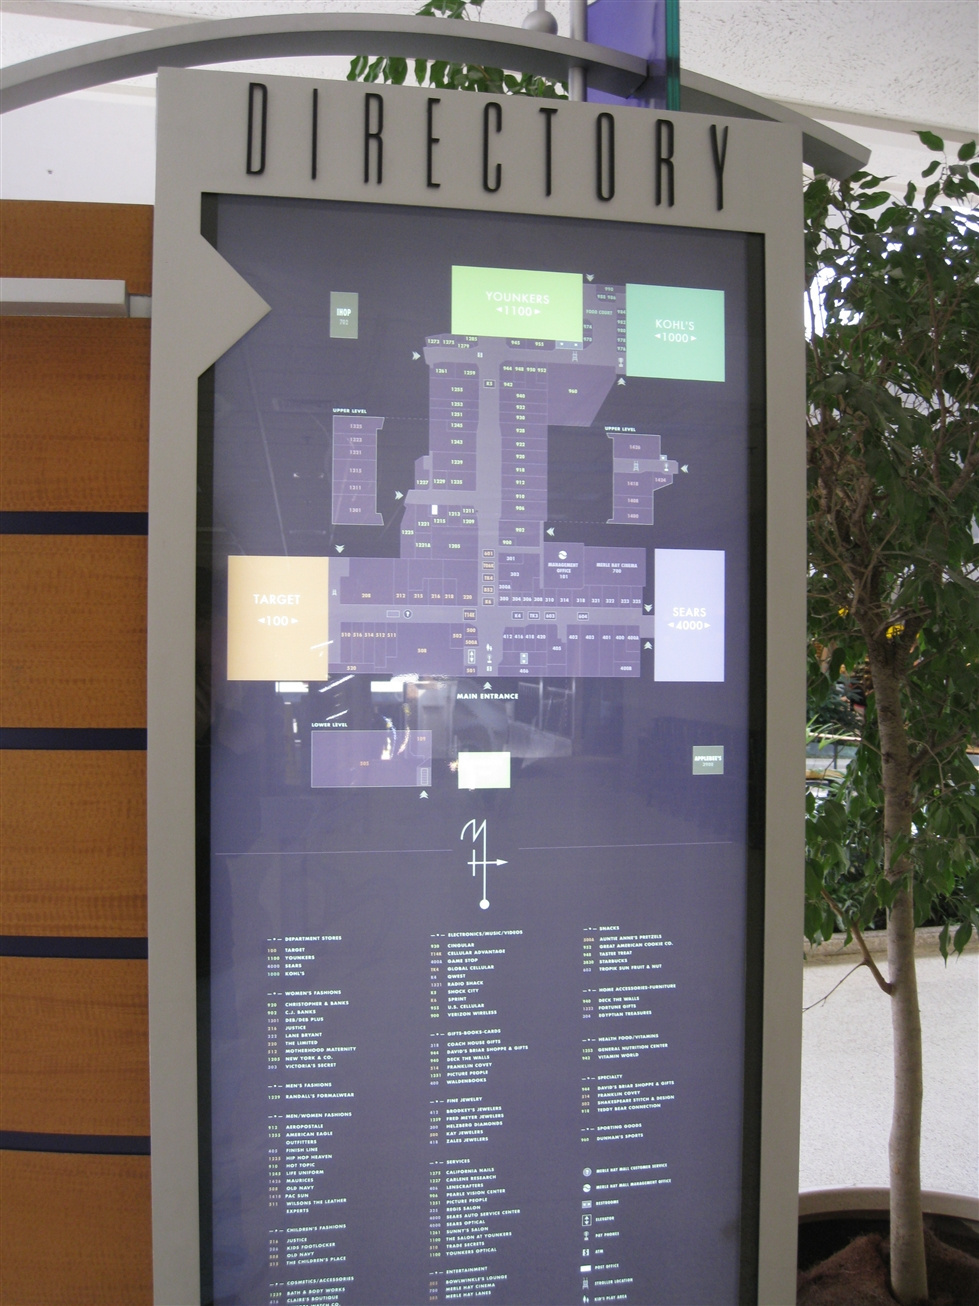 Directory-with-map.jpg